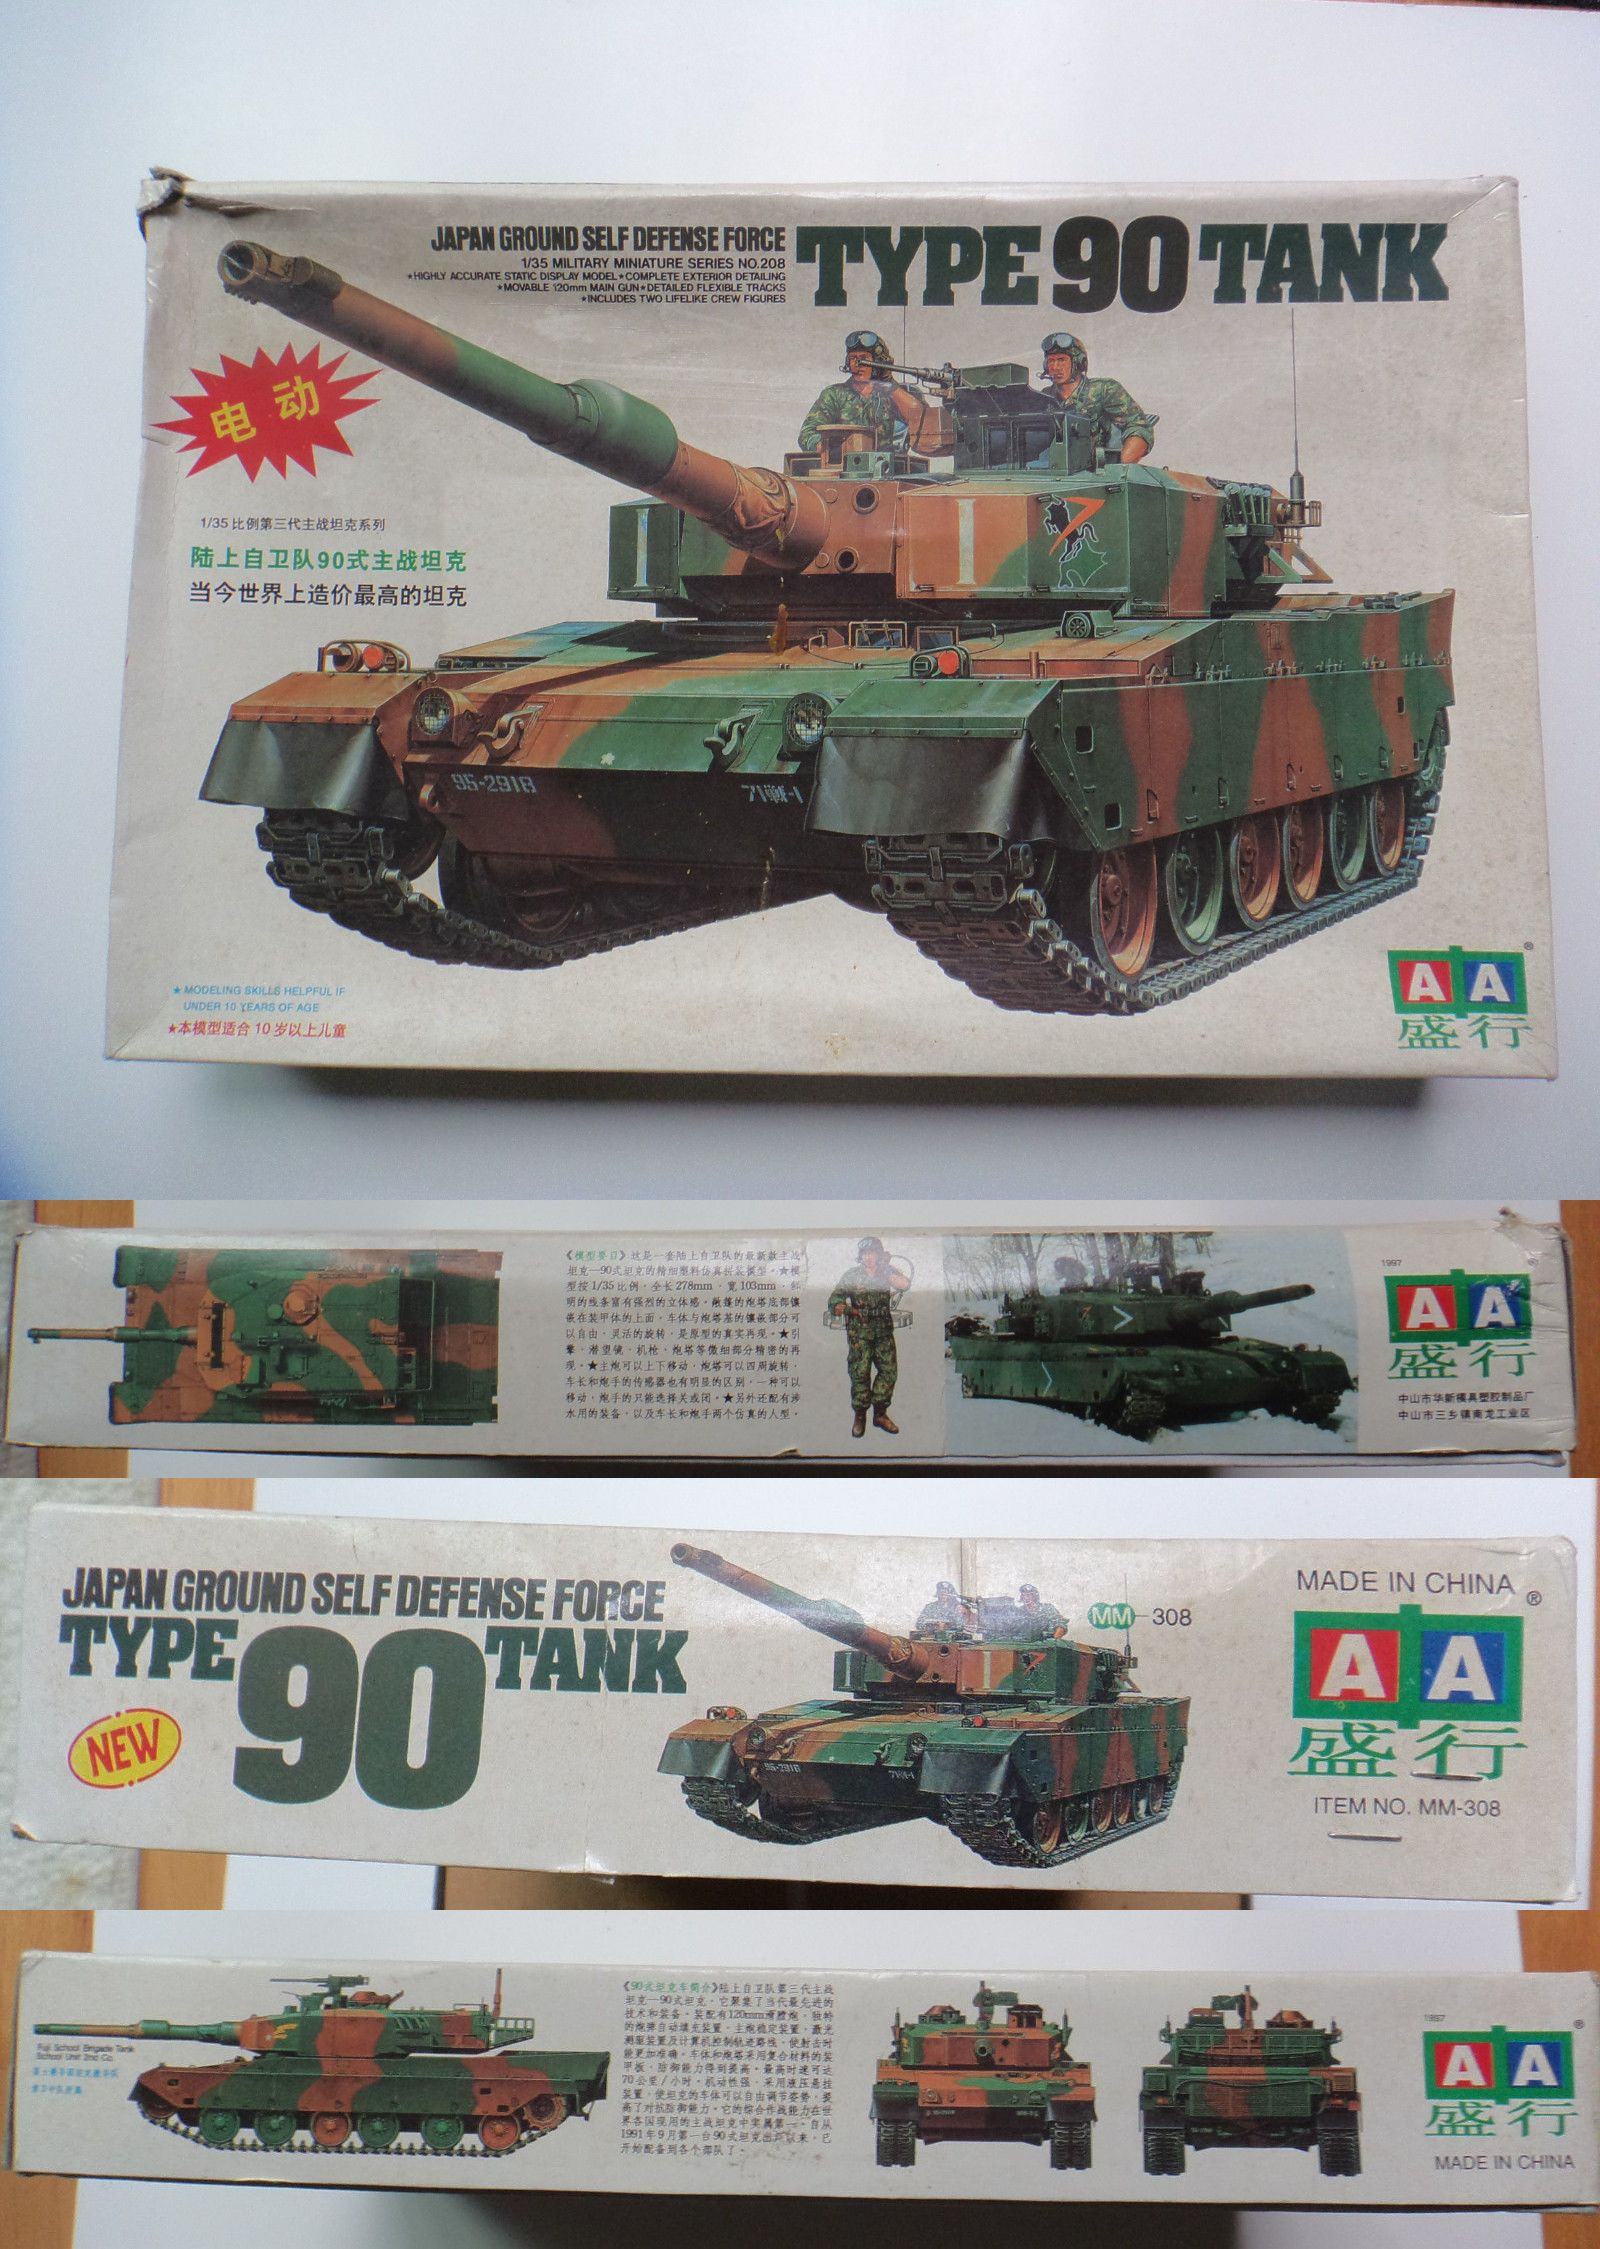 9ac4b350824b Other Models and Kits 774  Japan Self Defense Force Type 90 Main Battle  Tank Aa Motorised Model Kit Niob -  BUY IT NOW ONLY   29.99 on  eBay  other   models ...